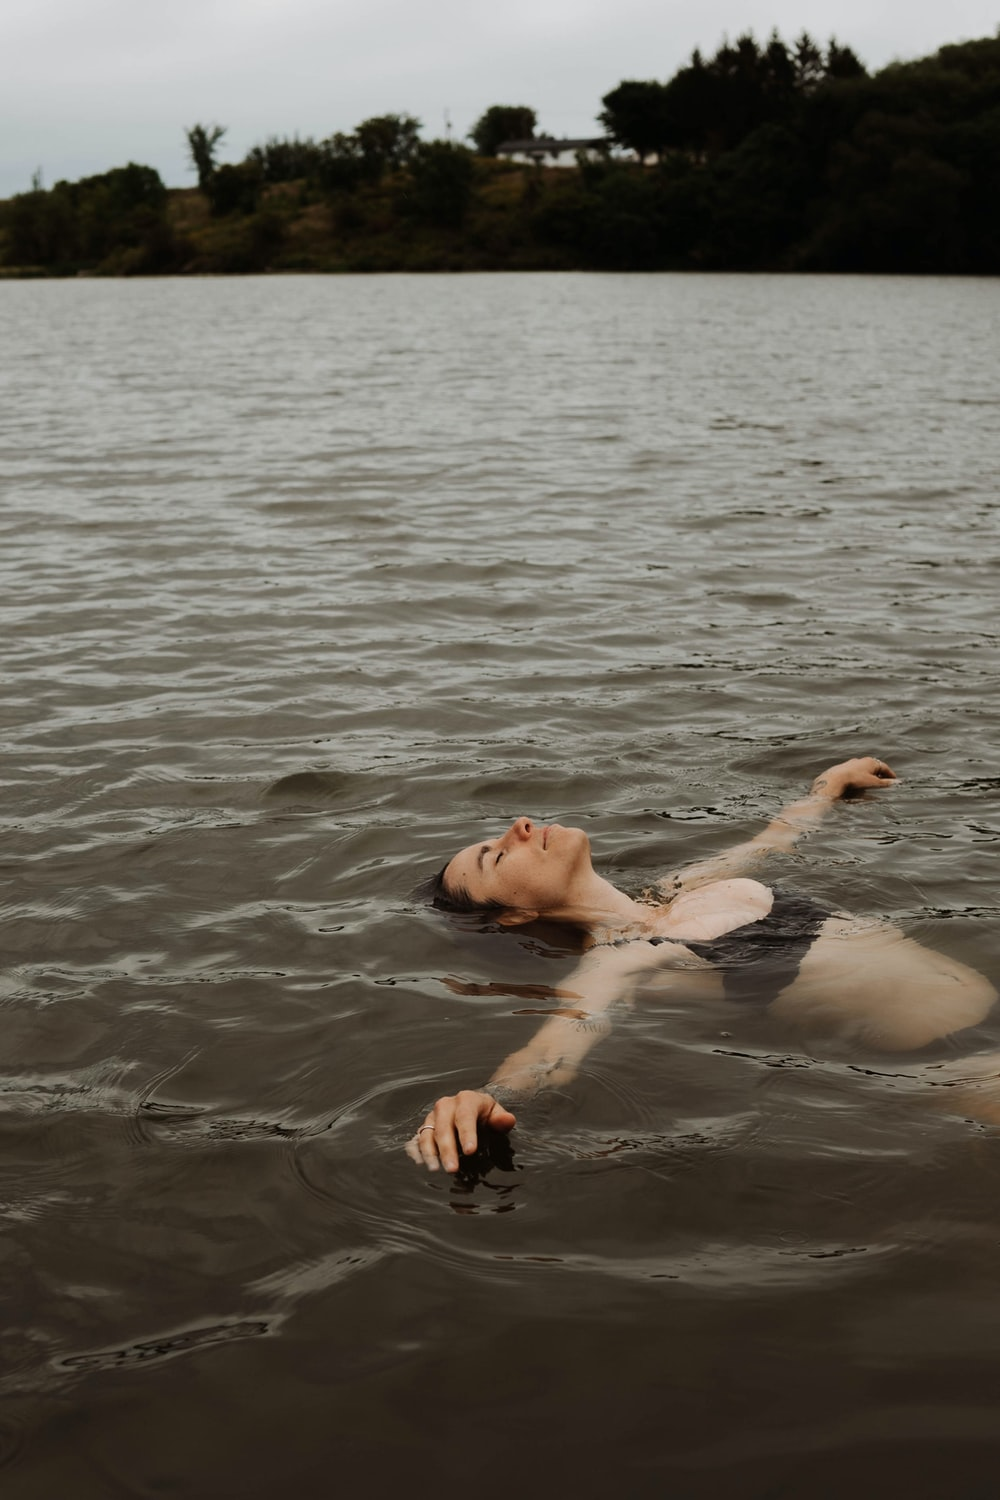 man and woman in water during daytime